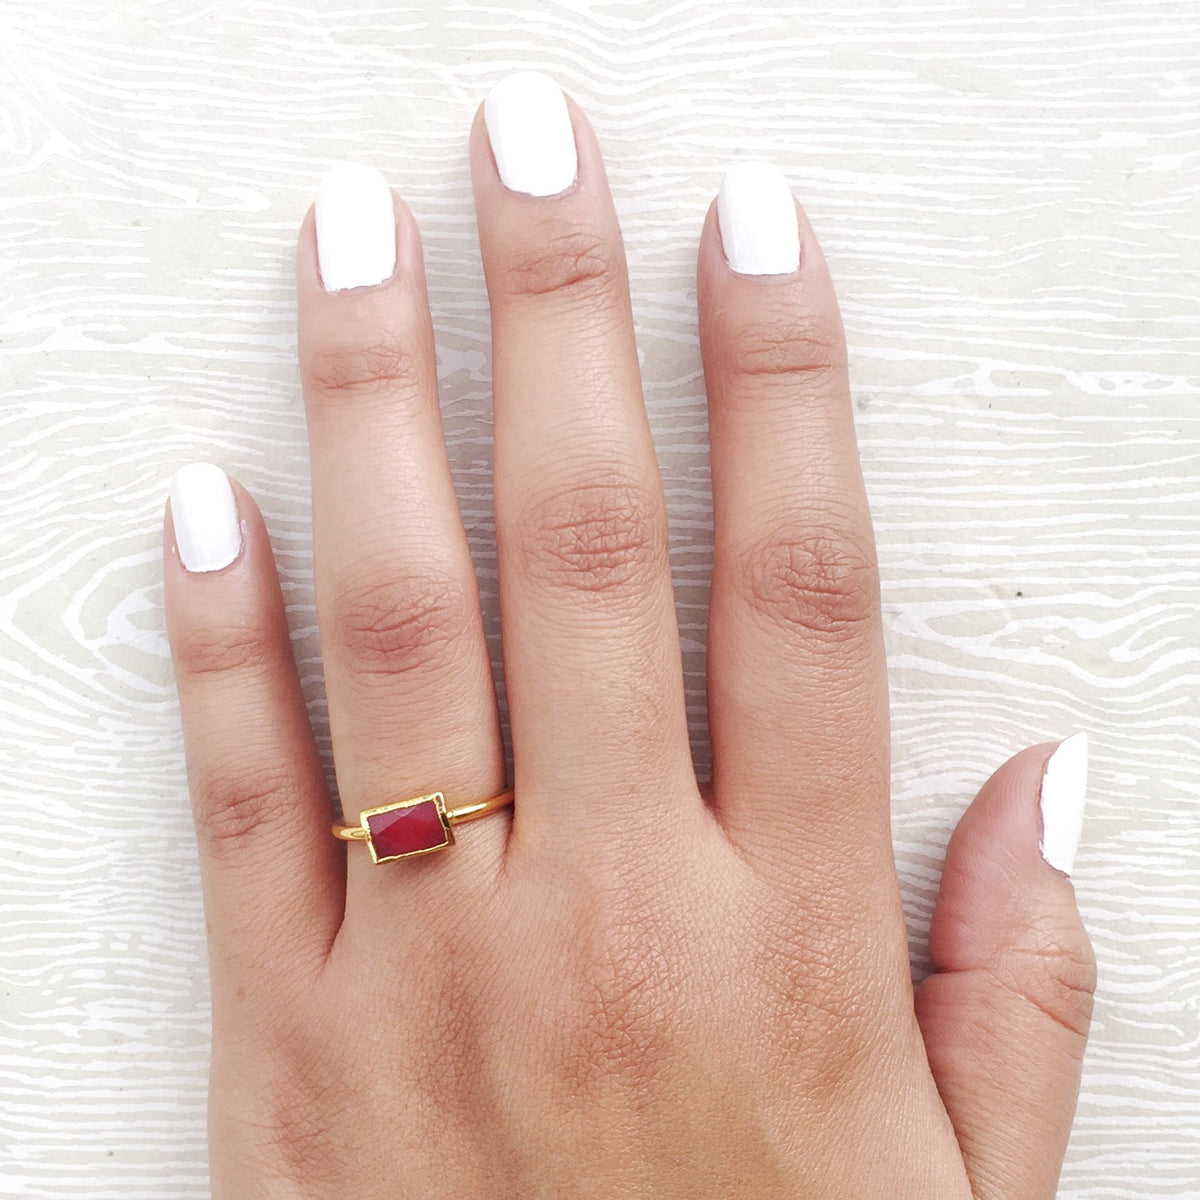 semiprecious red stone rectangular stacking ring on hand